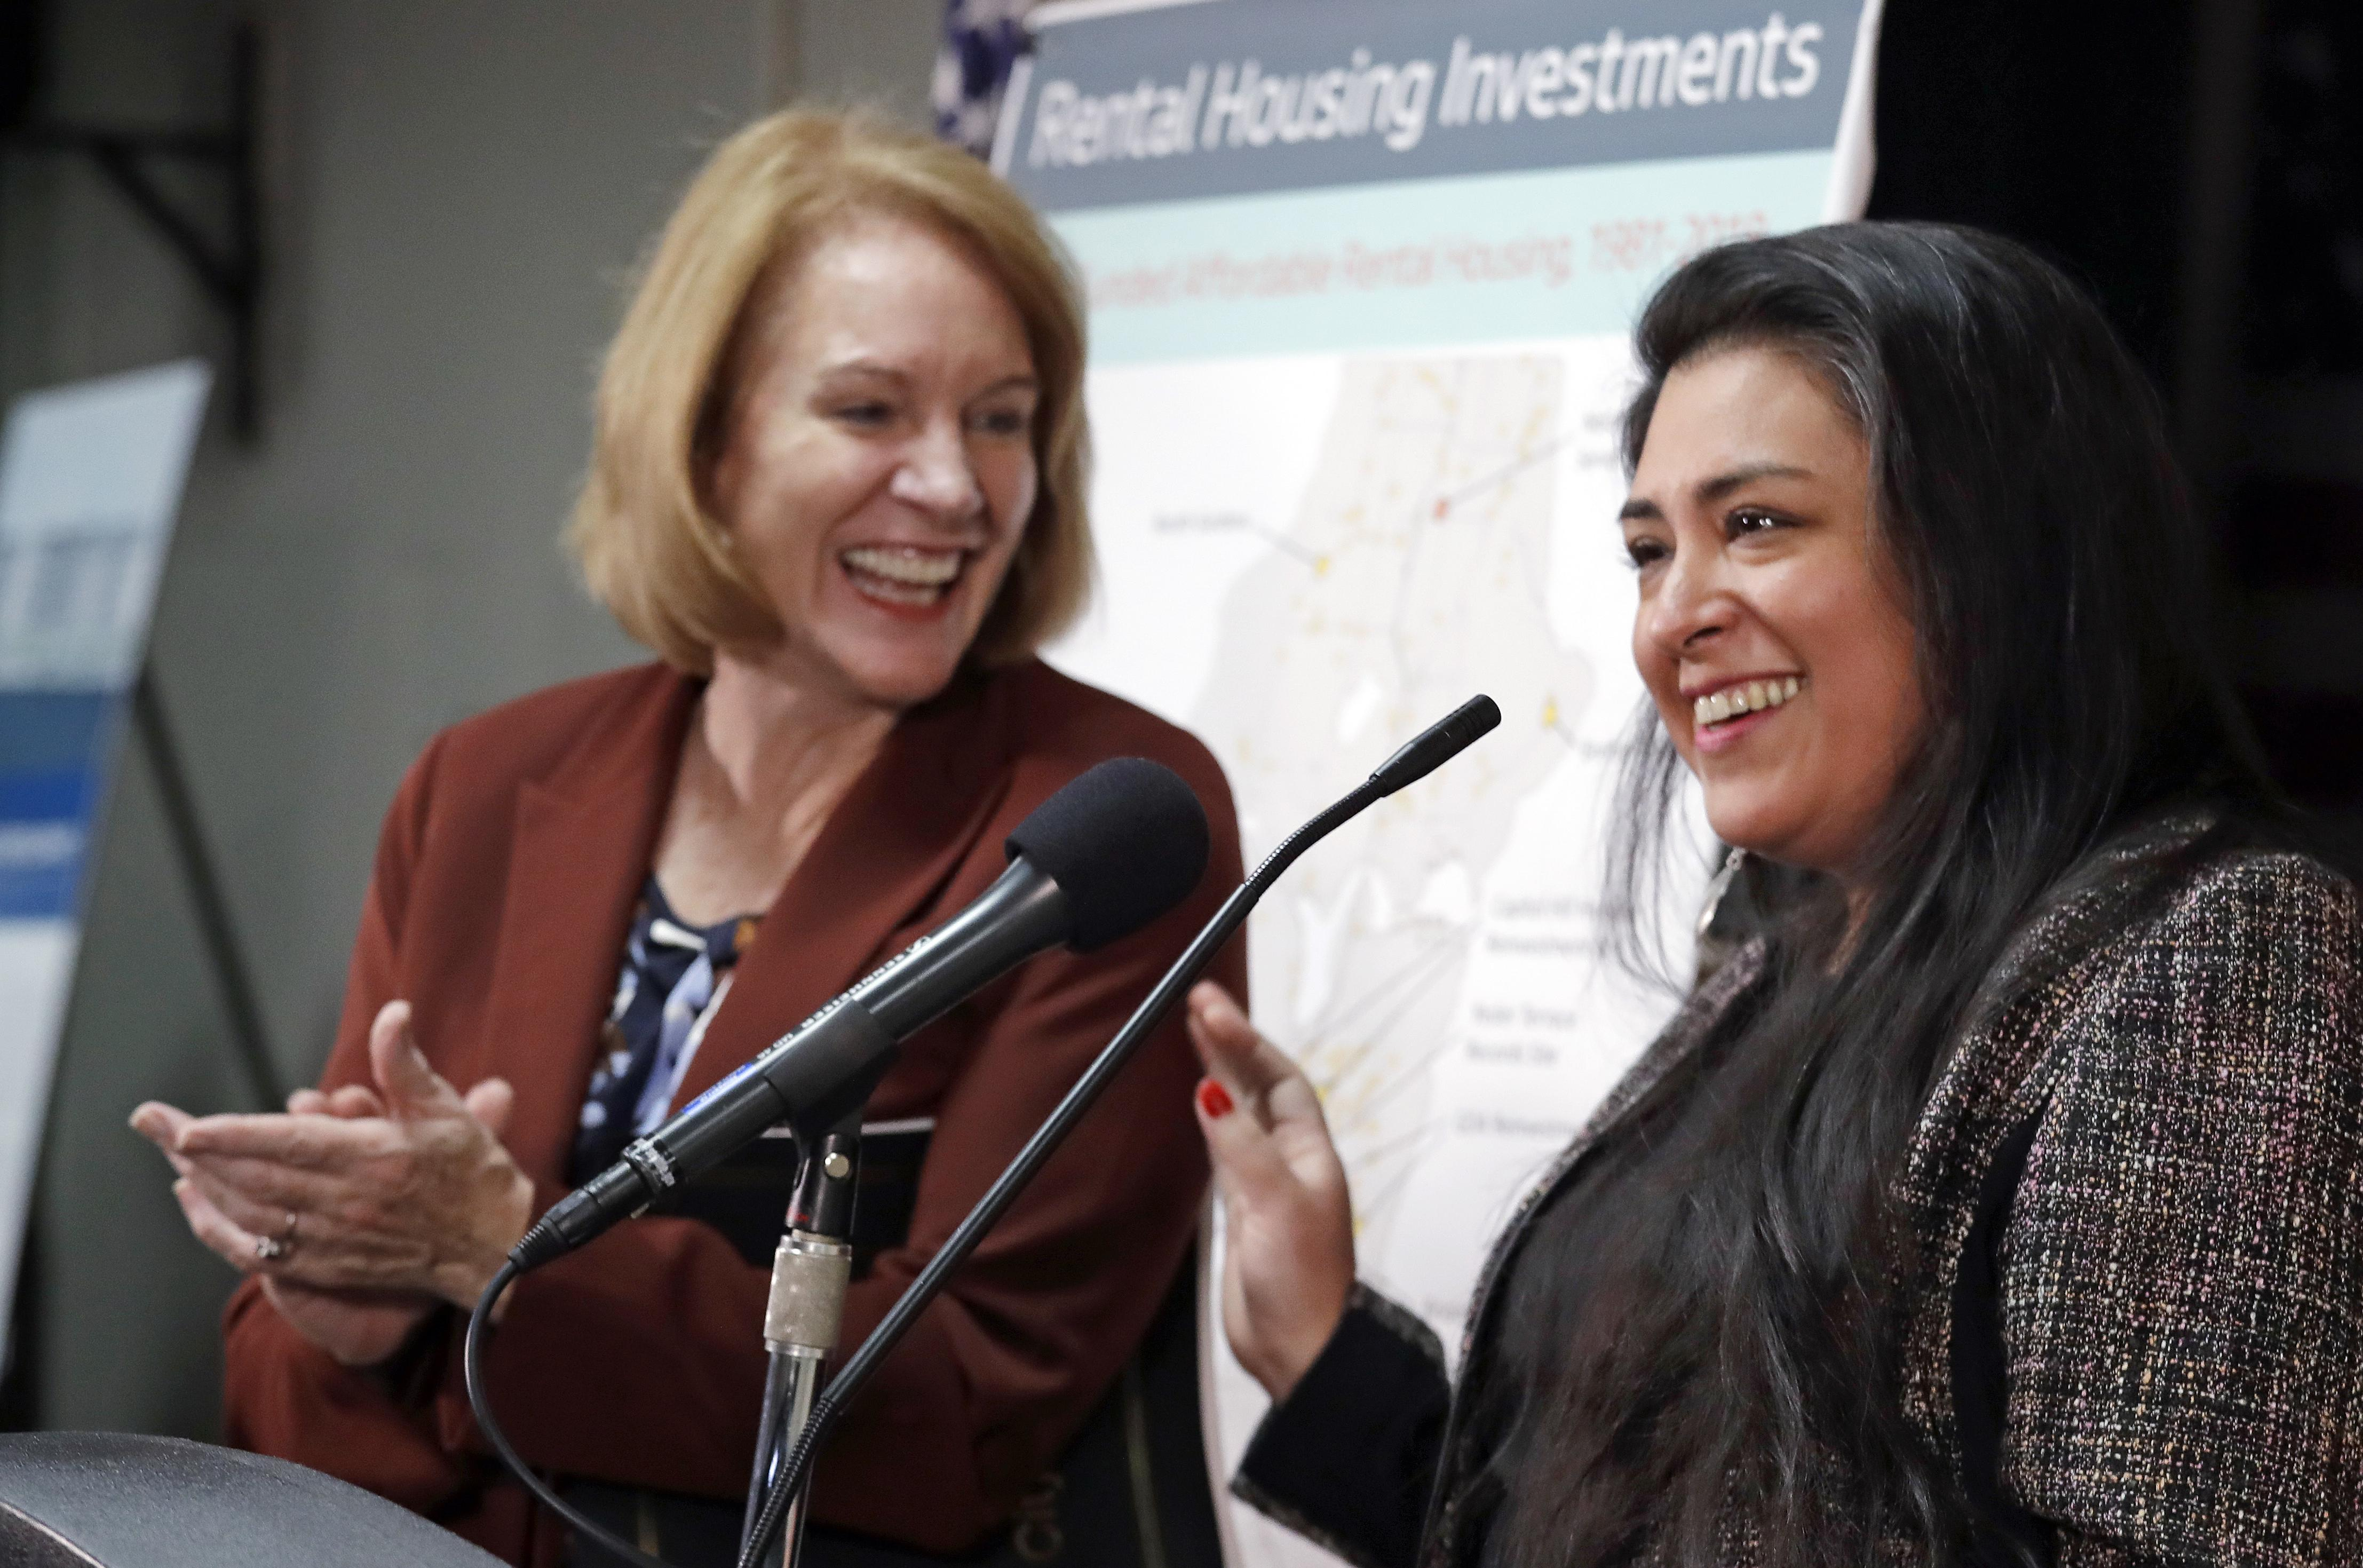 Durkan will advance $90 mil plan for low-income housing